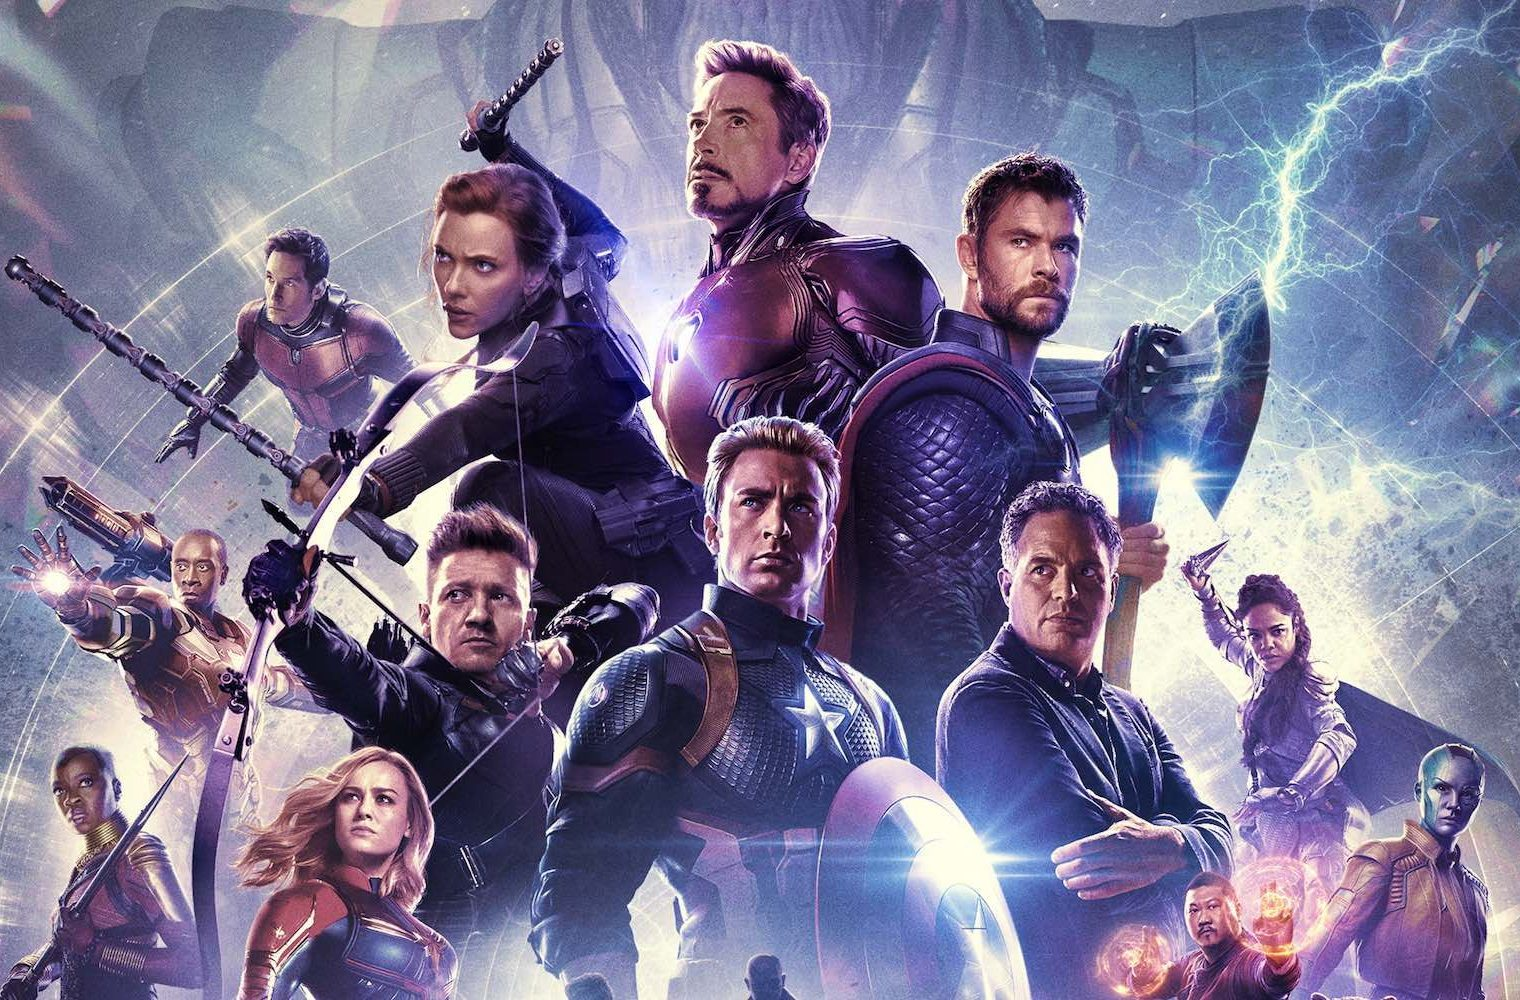 Avengers Endgame Poster Cropped e1628002231681 25 Things You Didn't Know About Avengers: Endgame